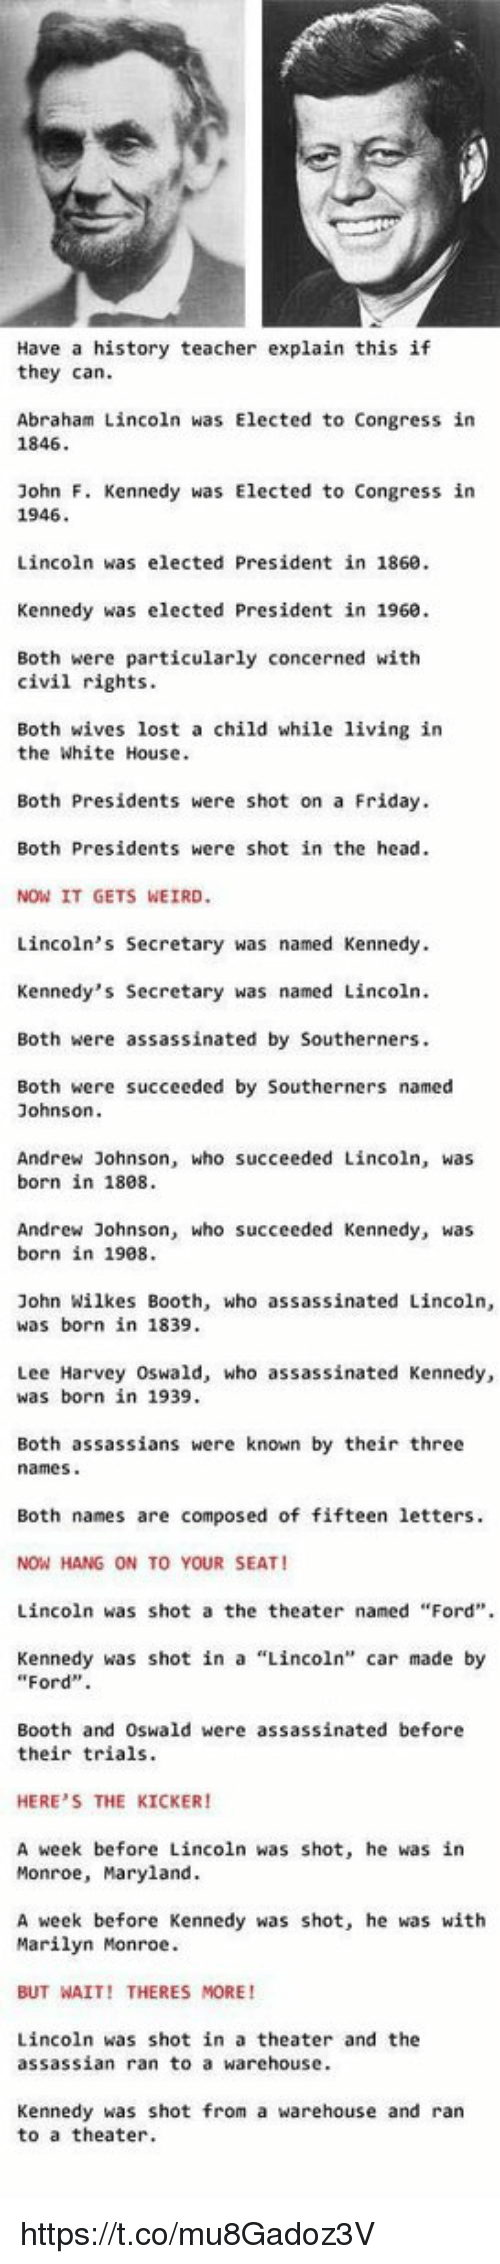 """Abraham Lincoln, Assassination, and Memes: Have a history teacher explain this if  they can.  Abraham Lincoln was Elected to Congress in  1846  John F. Kennedy was Elected to Congress in  1946.  Lincoln was elected President in 1860.  Kennedy was elected President in 1960.  Both were particularly concerned with  civil rights.  Both wives lost a child while living in  the White House.  Both Presidents were shot on a Friday.  Both Presidents were shot in the head.  NOW IT GETS WEIRD.  Lincoln's Secretary was named Kennedy.  Kennedy's Secretary was named Lincoln.  Both were assassinated by Southerners.  Both were succeeded by Southerners named  Johnson.  Andrew Johnson, who succeeded Lincoln, was  born in 1808.  Andrew Johnson, who succeeded Kennedy, was  born in 1908.  John Wilkes Booth, who assassinated Lincoln,  was born in 1839.  Lee Harvey Oswald, who assassinated Kennedy,  was born in 1939.  Both assassians were known by their three  names  Both names are composed of fifteen letters.  NOW HANG ON TO YOUR SEAT!  Lincoln was shot a the theater named """"Ford"""".  Kennedy was shot in a Lincoln'  car made by  """"Ford"""".  Booth and Oswald were assassinated before  their trials.  HERE'S THE KICKER!  A week before Lincoln was shot, he was in  Monroe, Maryland.  A week before Kennedy was shot, he was with  Marilyn Monroe.  BUT WAIT! THERES MORE  Lincoln was shot in a theater and the  assassian ran to a warehouse.  Kennedy was shot from a warehouse and ran  to a theater. https://t.co/mu8Gadoz3V"""